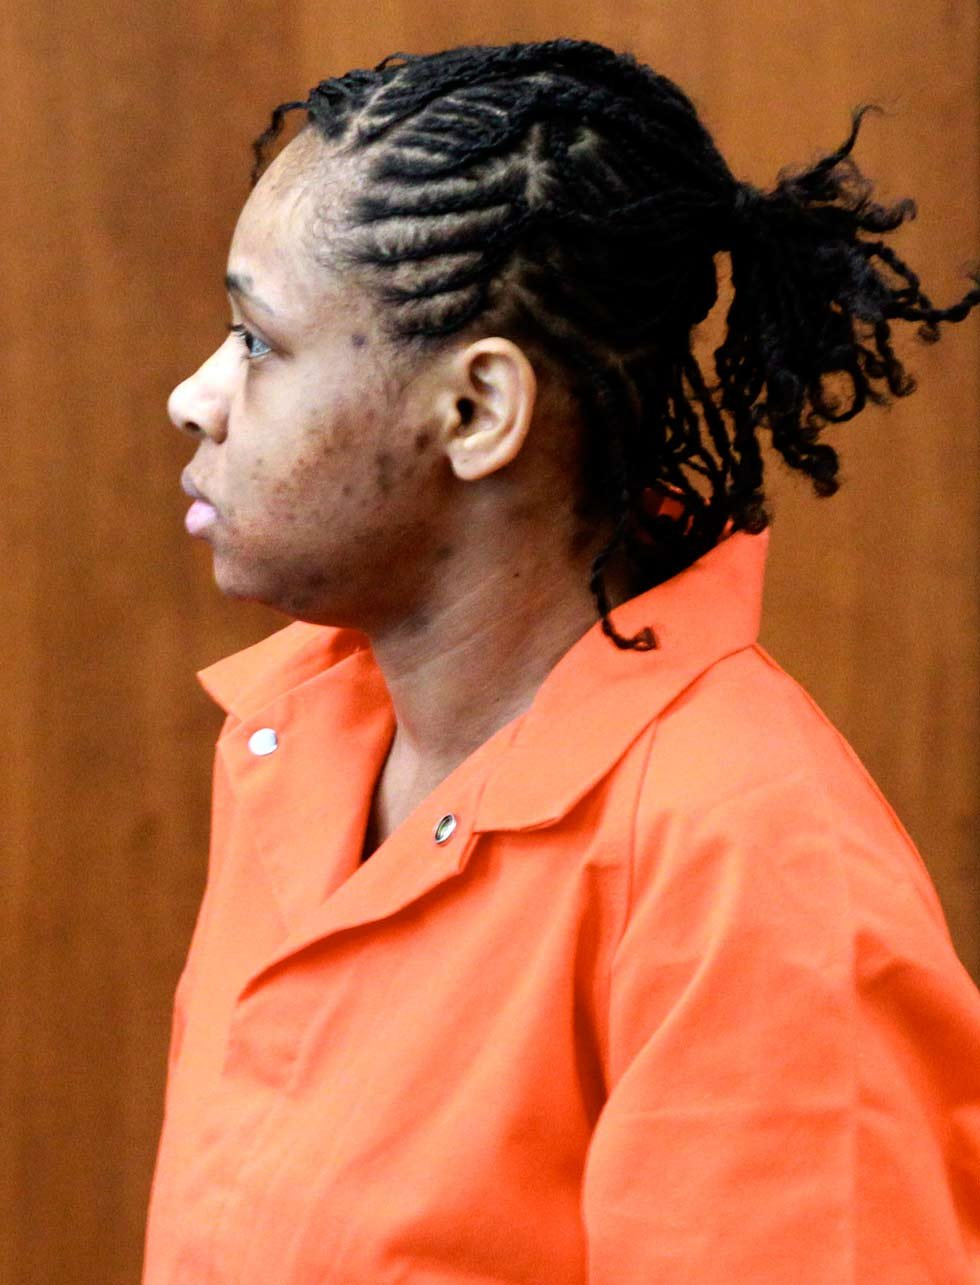 Jacole Prince in court Tuesday.